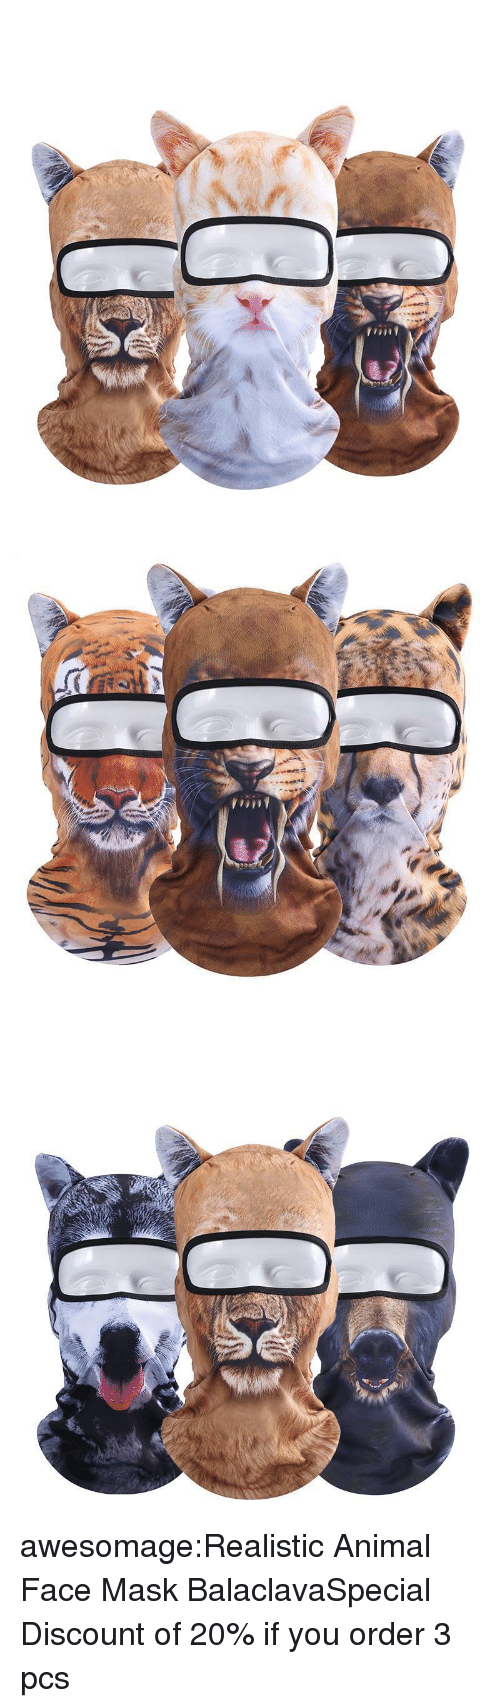 Tumblr, Animal, and Blog: awesomage:Realistic Animal Face Mask BalaclavaSpecial Discount of 20% if you order 3 pcs